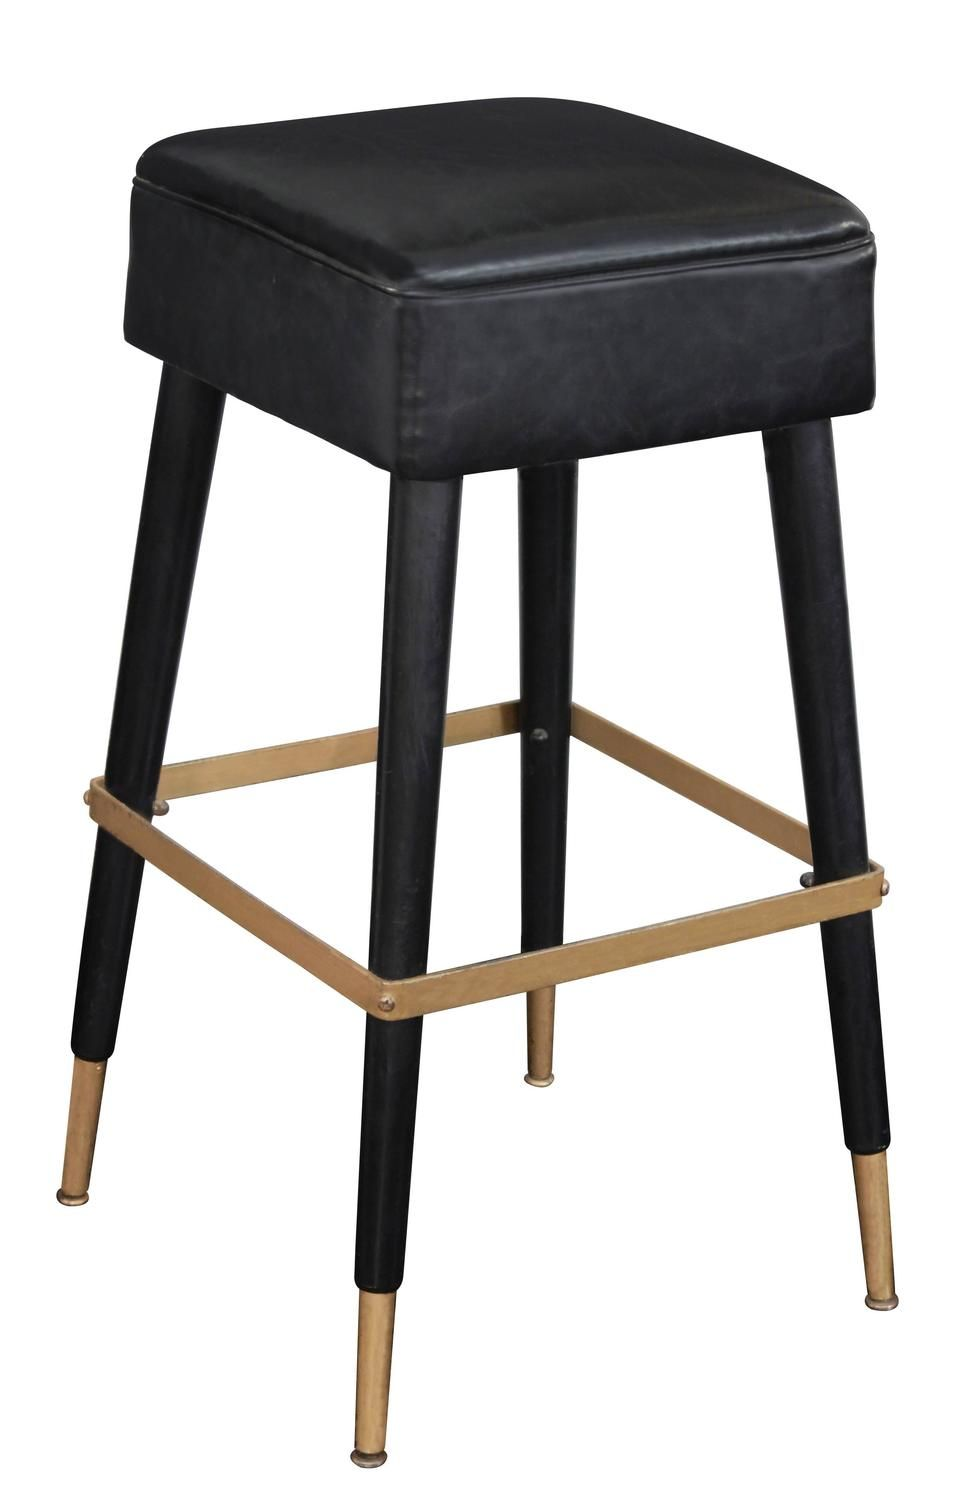 Set Of Four Chic Bar Stools With Brass Sabots And Footrests Luxury Bar Stools Bar Stools Bar Furniture For Sale